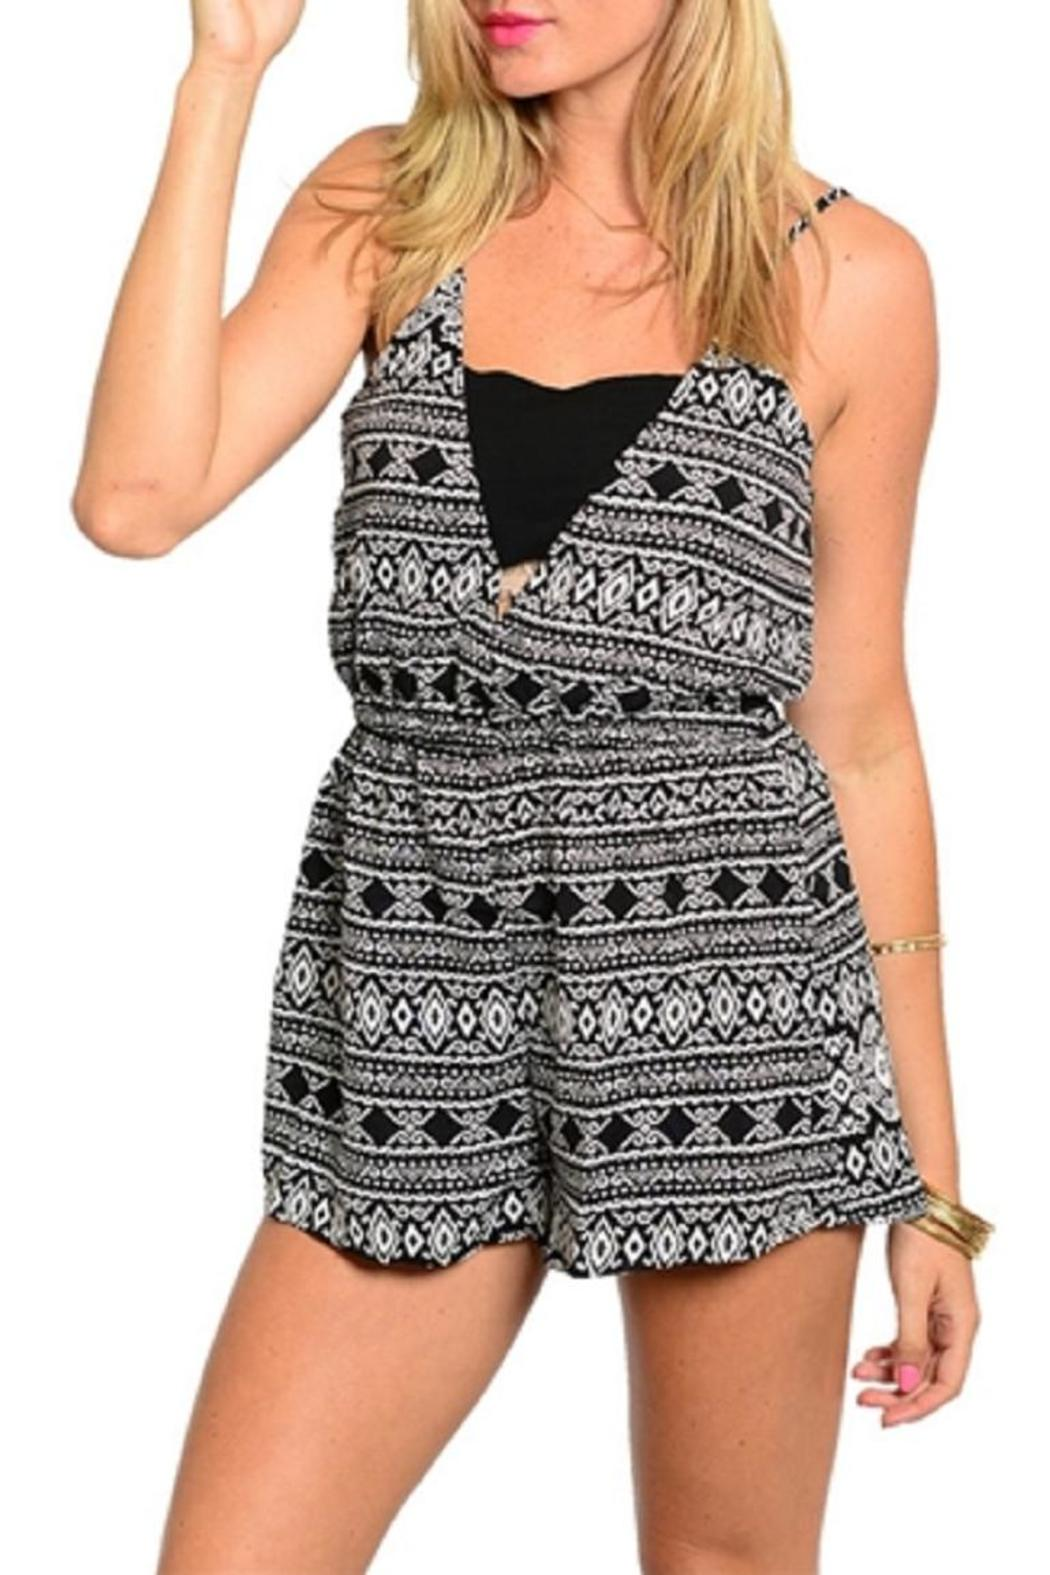 Adore Clothes & More Black White Romper - Front Cropped Image